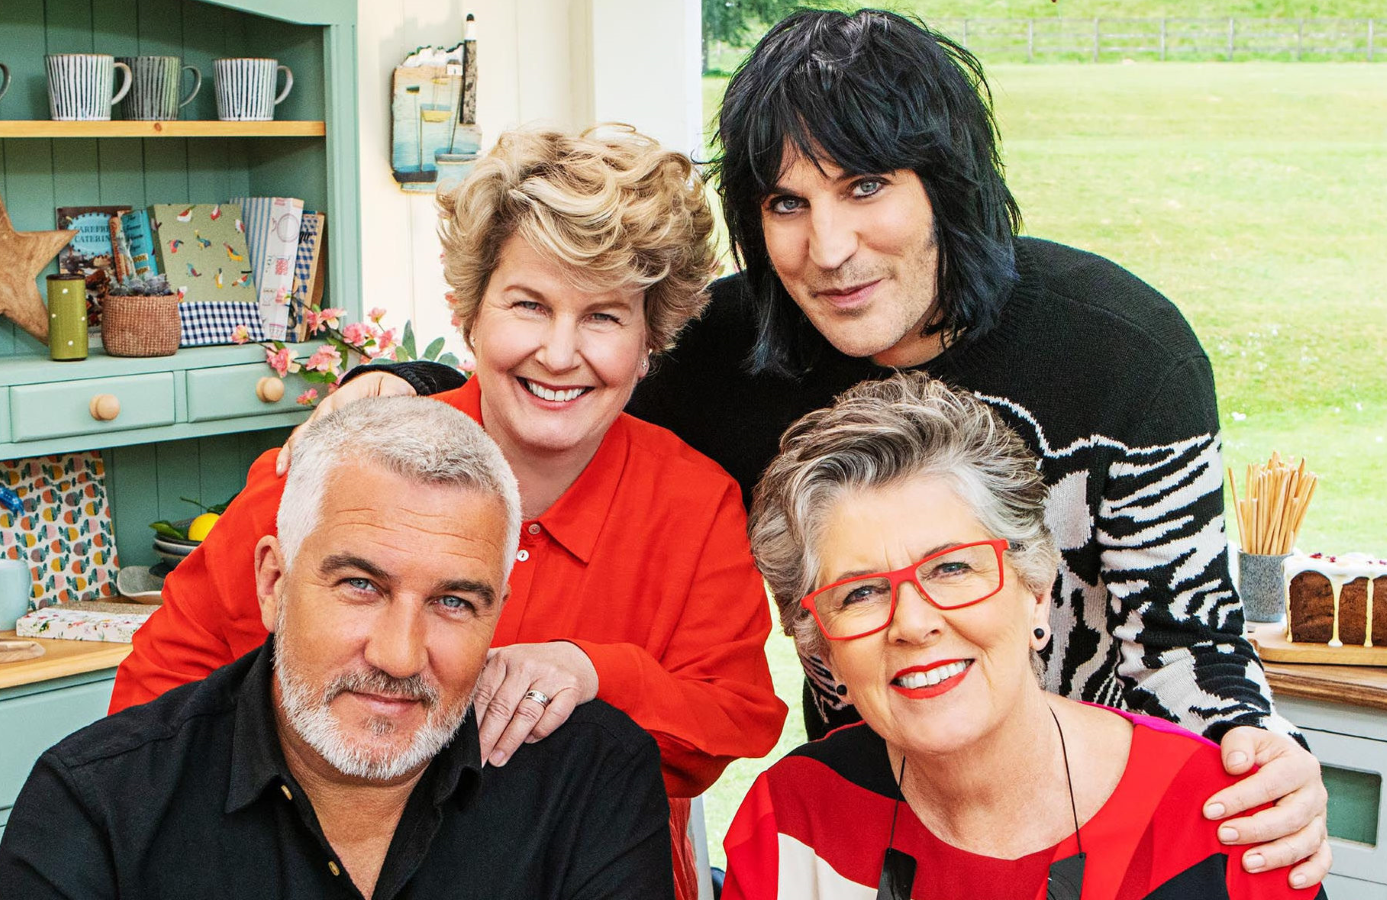 Paul Hollywood, Sandi Toksvig Noel Fielding and Prue Leith in The Great British Baking Show. (Channel 4/Netflix)